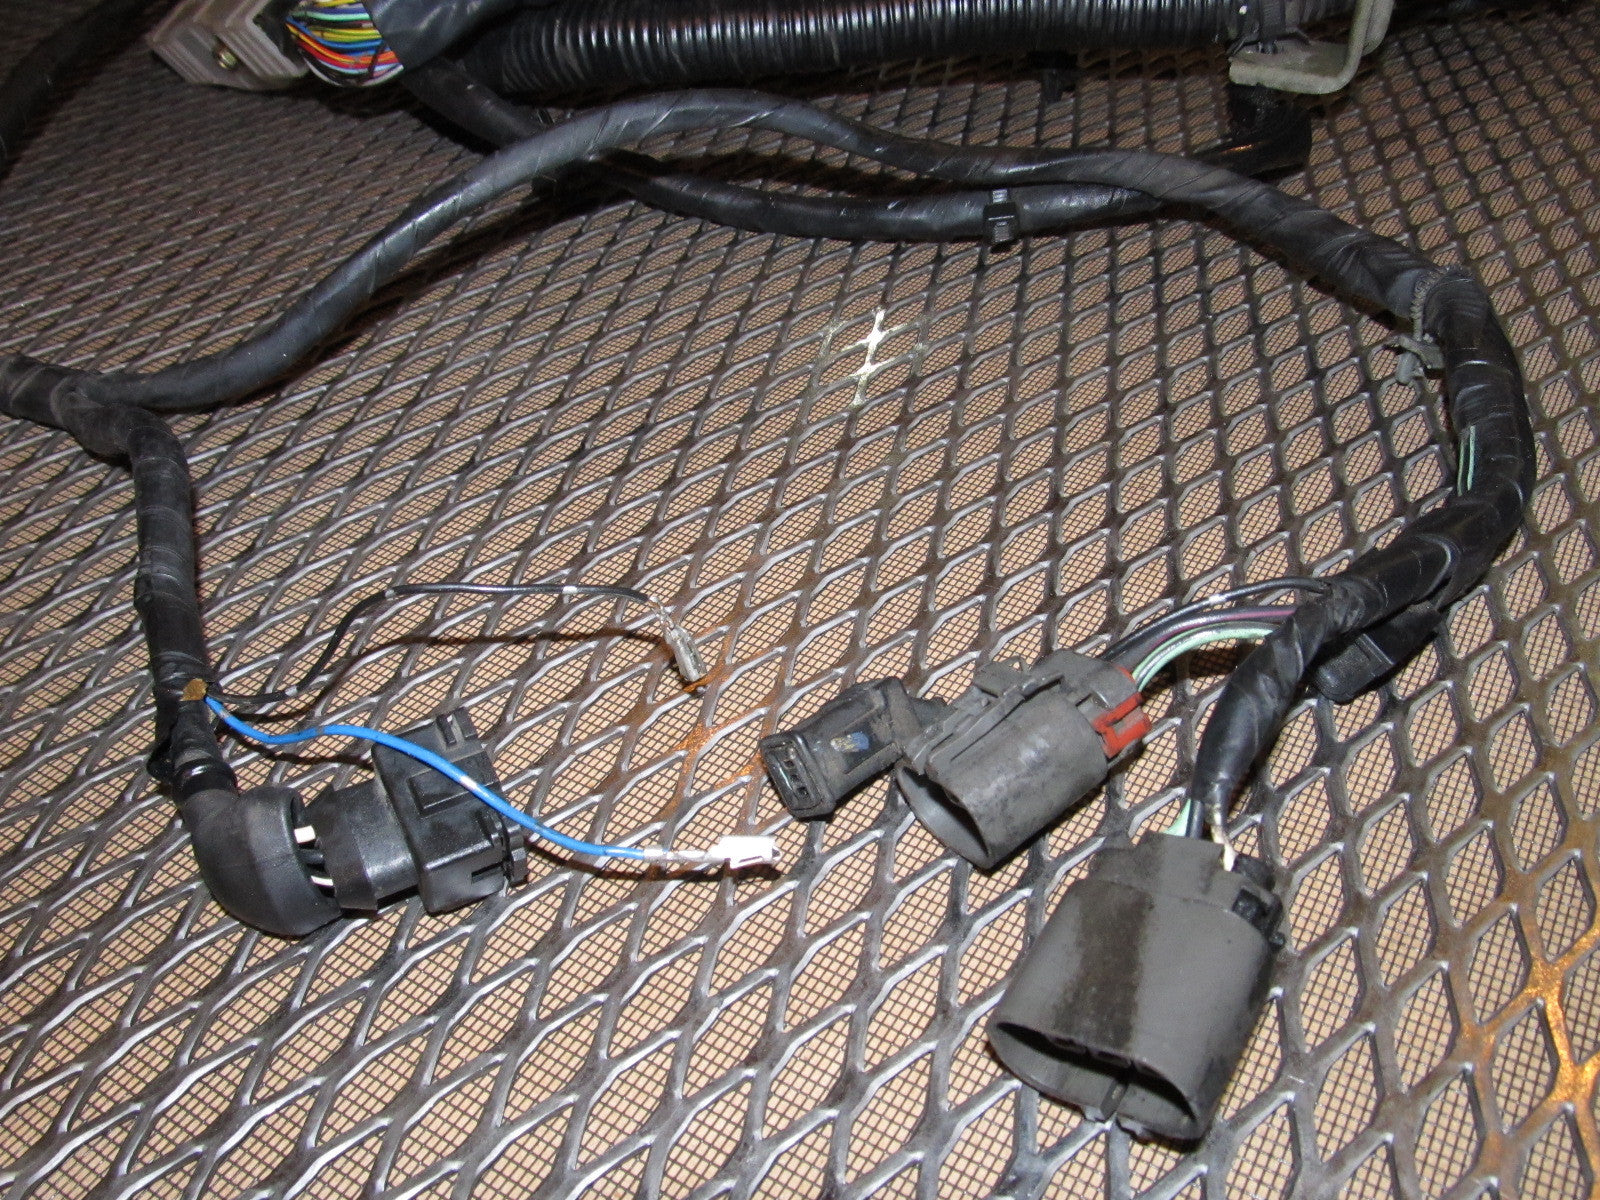 IMG_4498_ff6e864a a03a 48ff 9d7e 501b5bd07406?v=1464395452 89 90 nissan 240sx oem engine wiring harness ka24e m t ka24e wiring harness for sale at mifinder.co